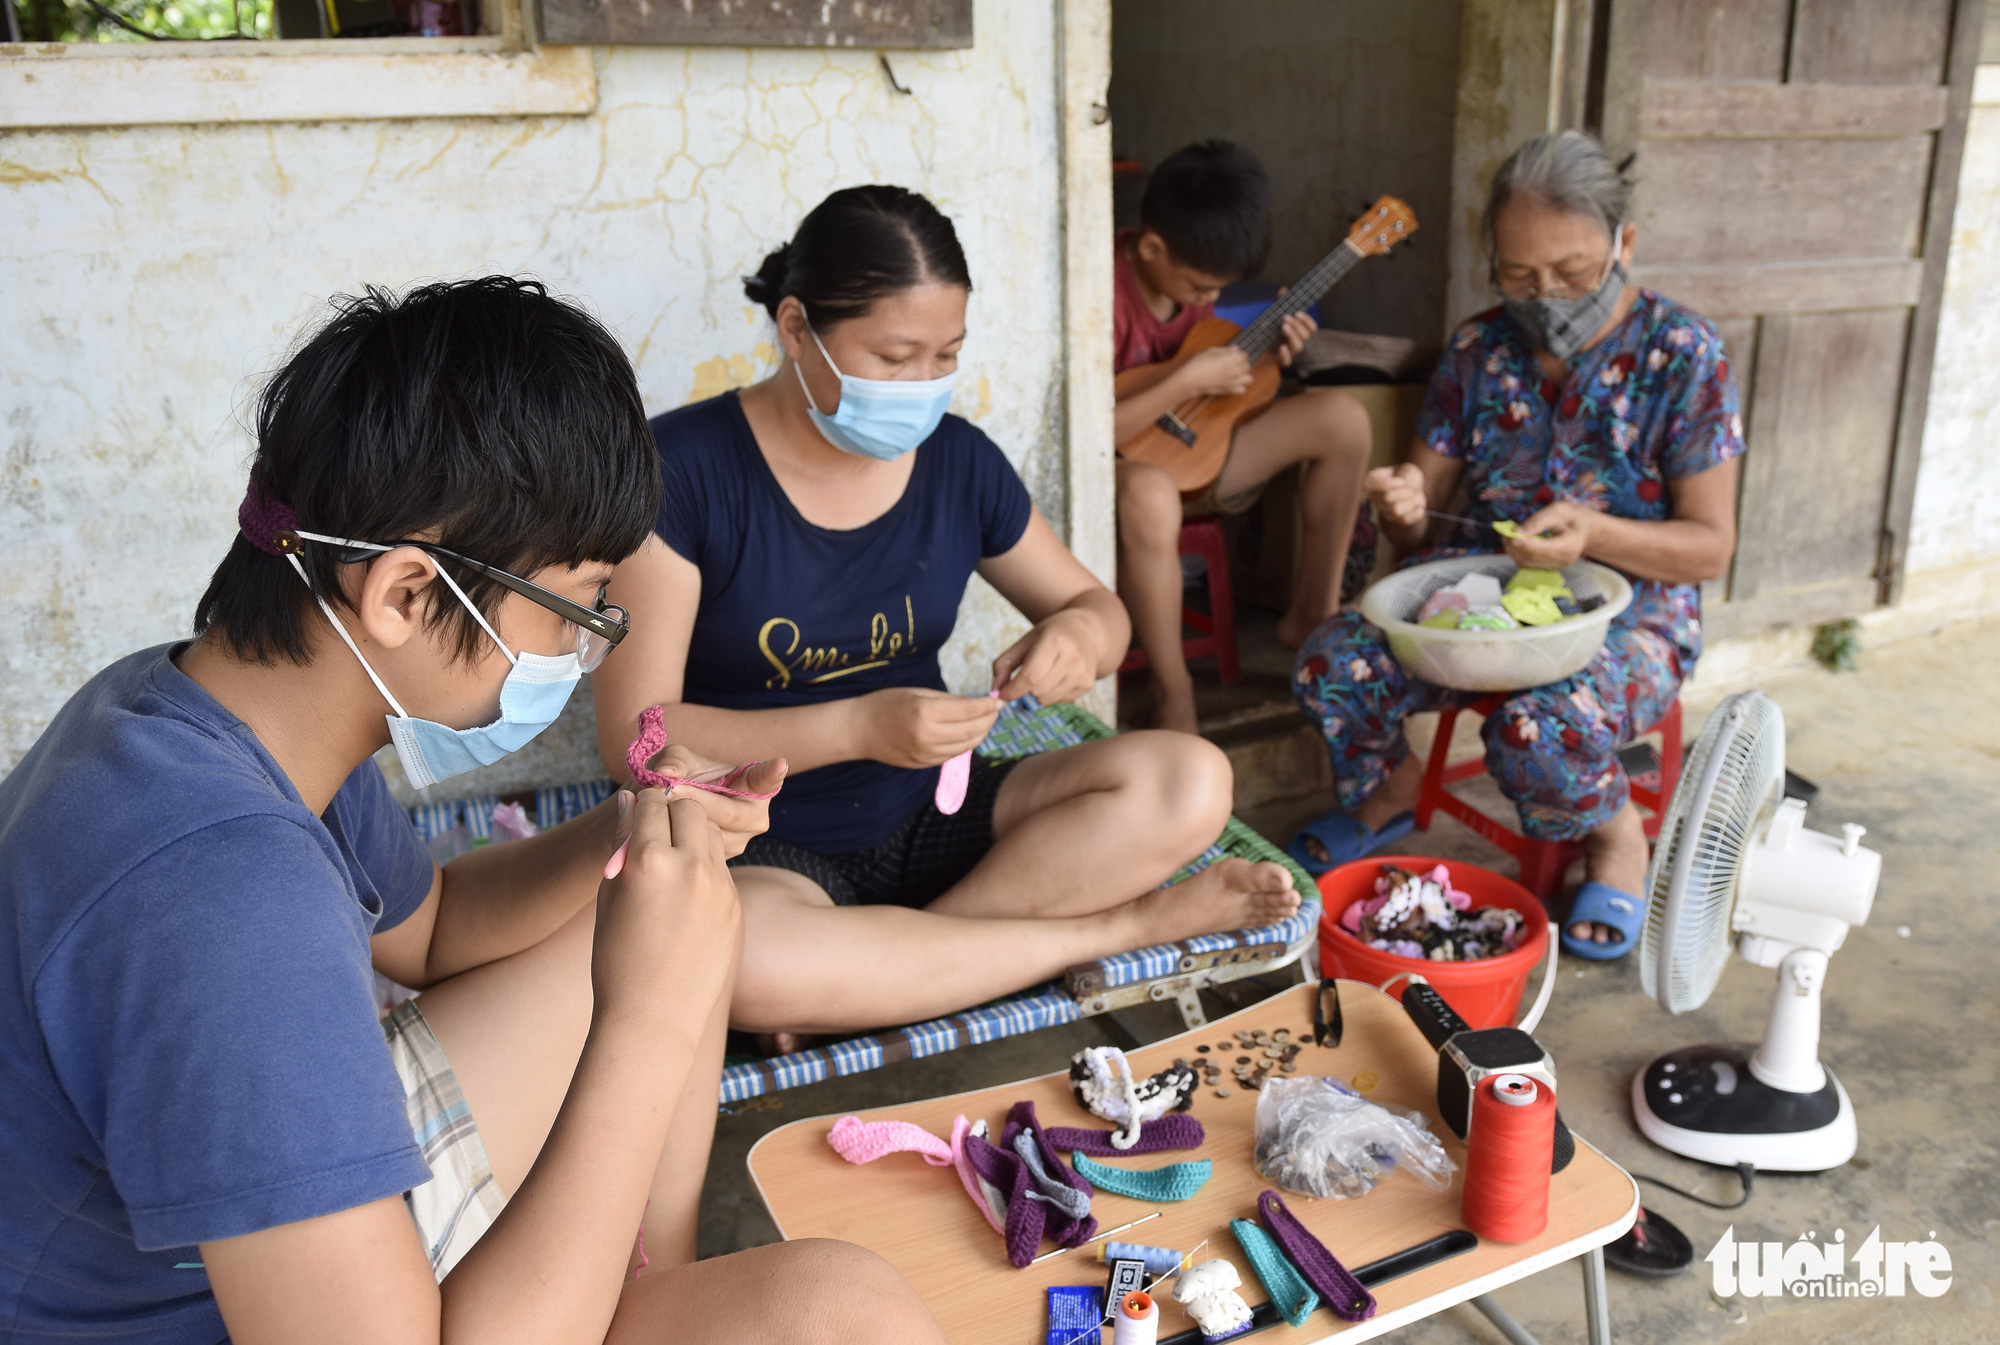 Nguyen Tuong Van (second left), her mother and two sons knit cushions that relieve mask wearers of discomfort in this supplied photo. The family donated more than 300 knitted cushions to frontliners during the lockdown in place to curb the second coronavirus disease (COVID-19) outbreak that hit Da Nang City in central Vietnam and neighboring Quang Nam Province in July 2020.